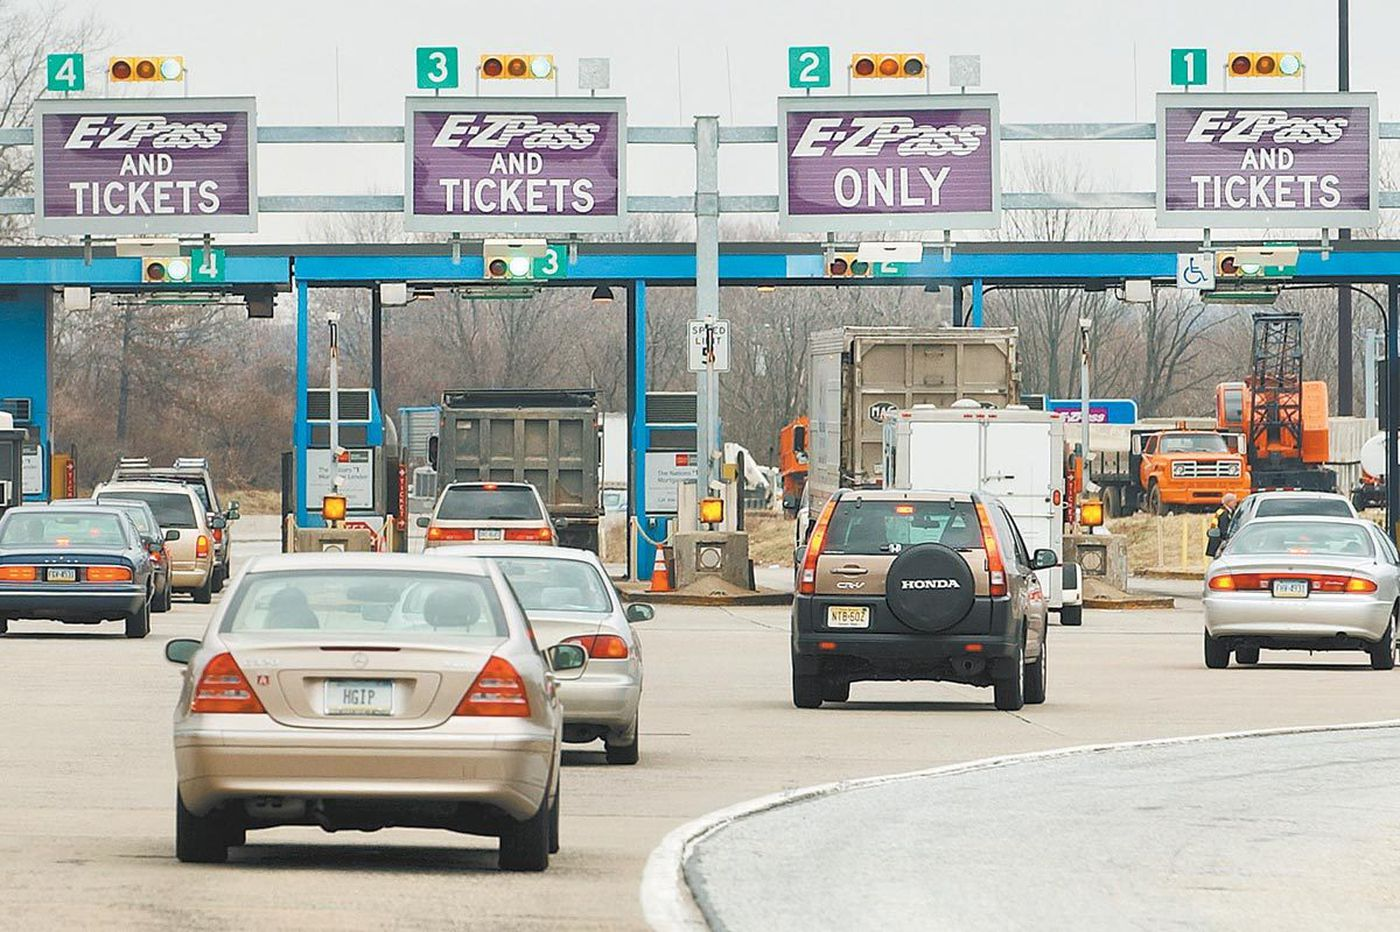 Pa. Turnpike tolls go up this weekend